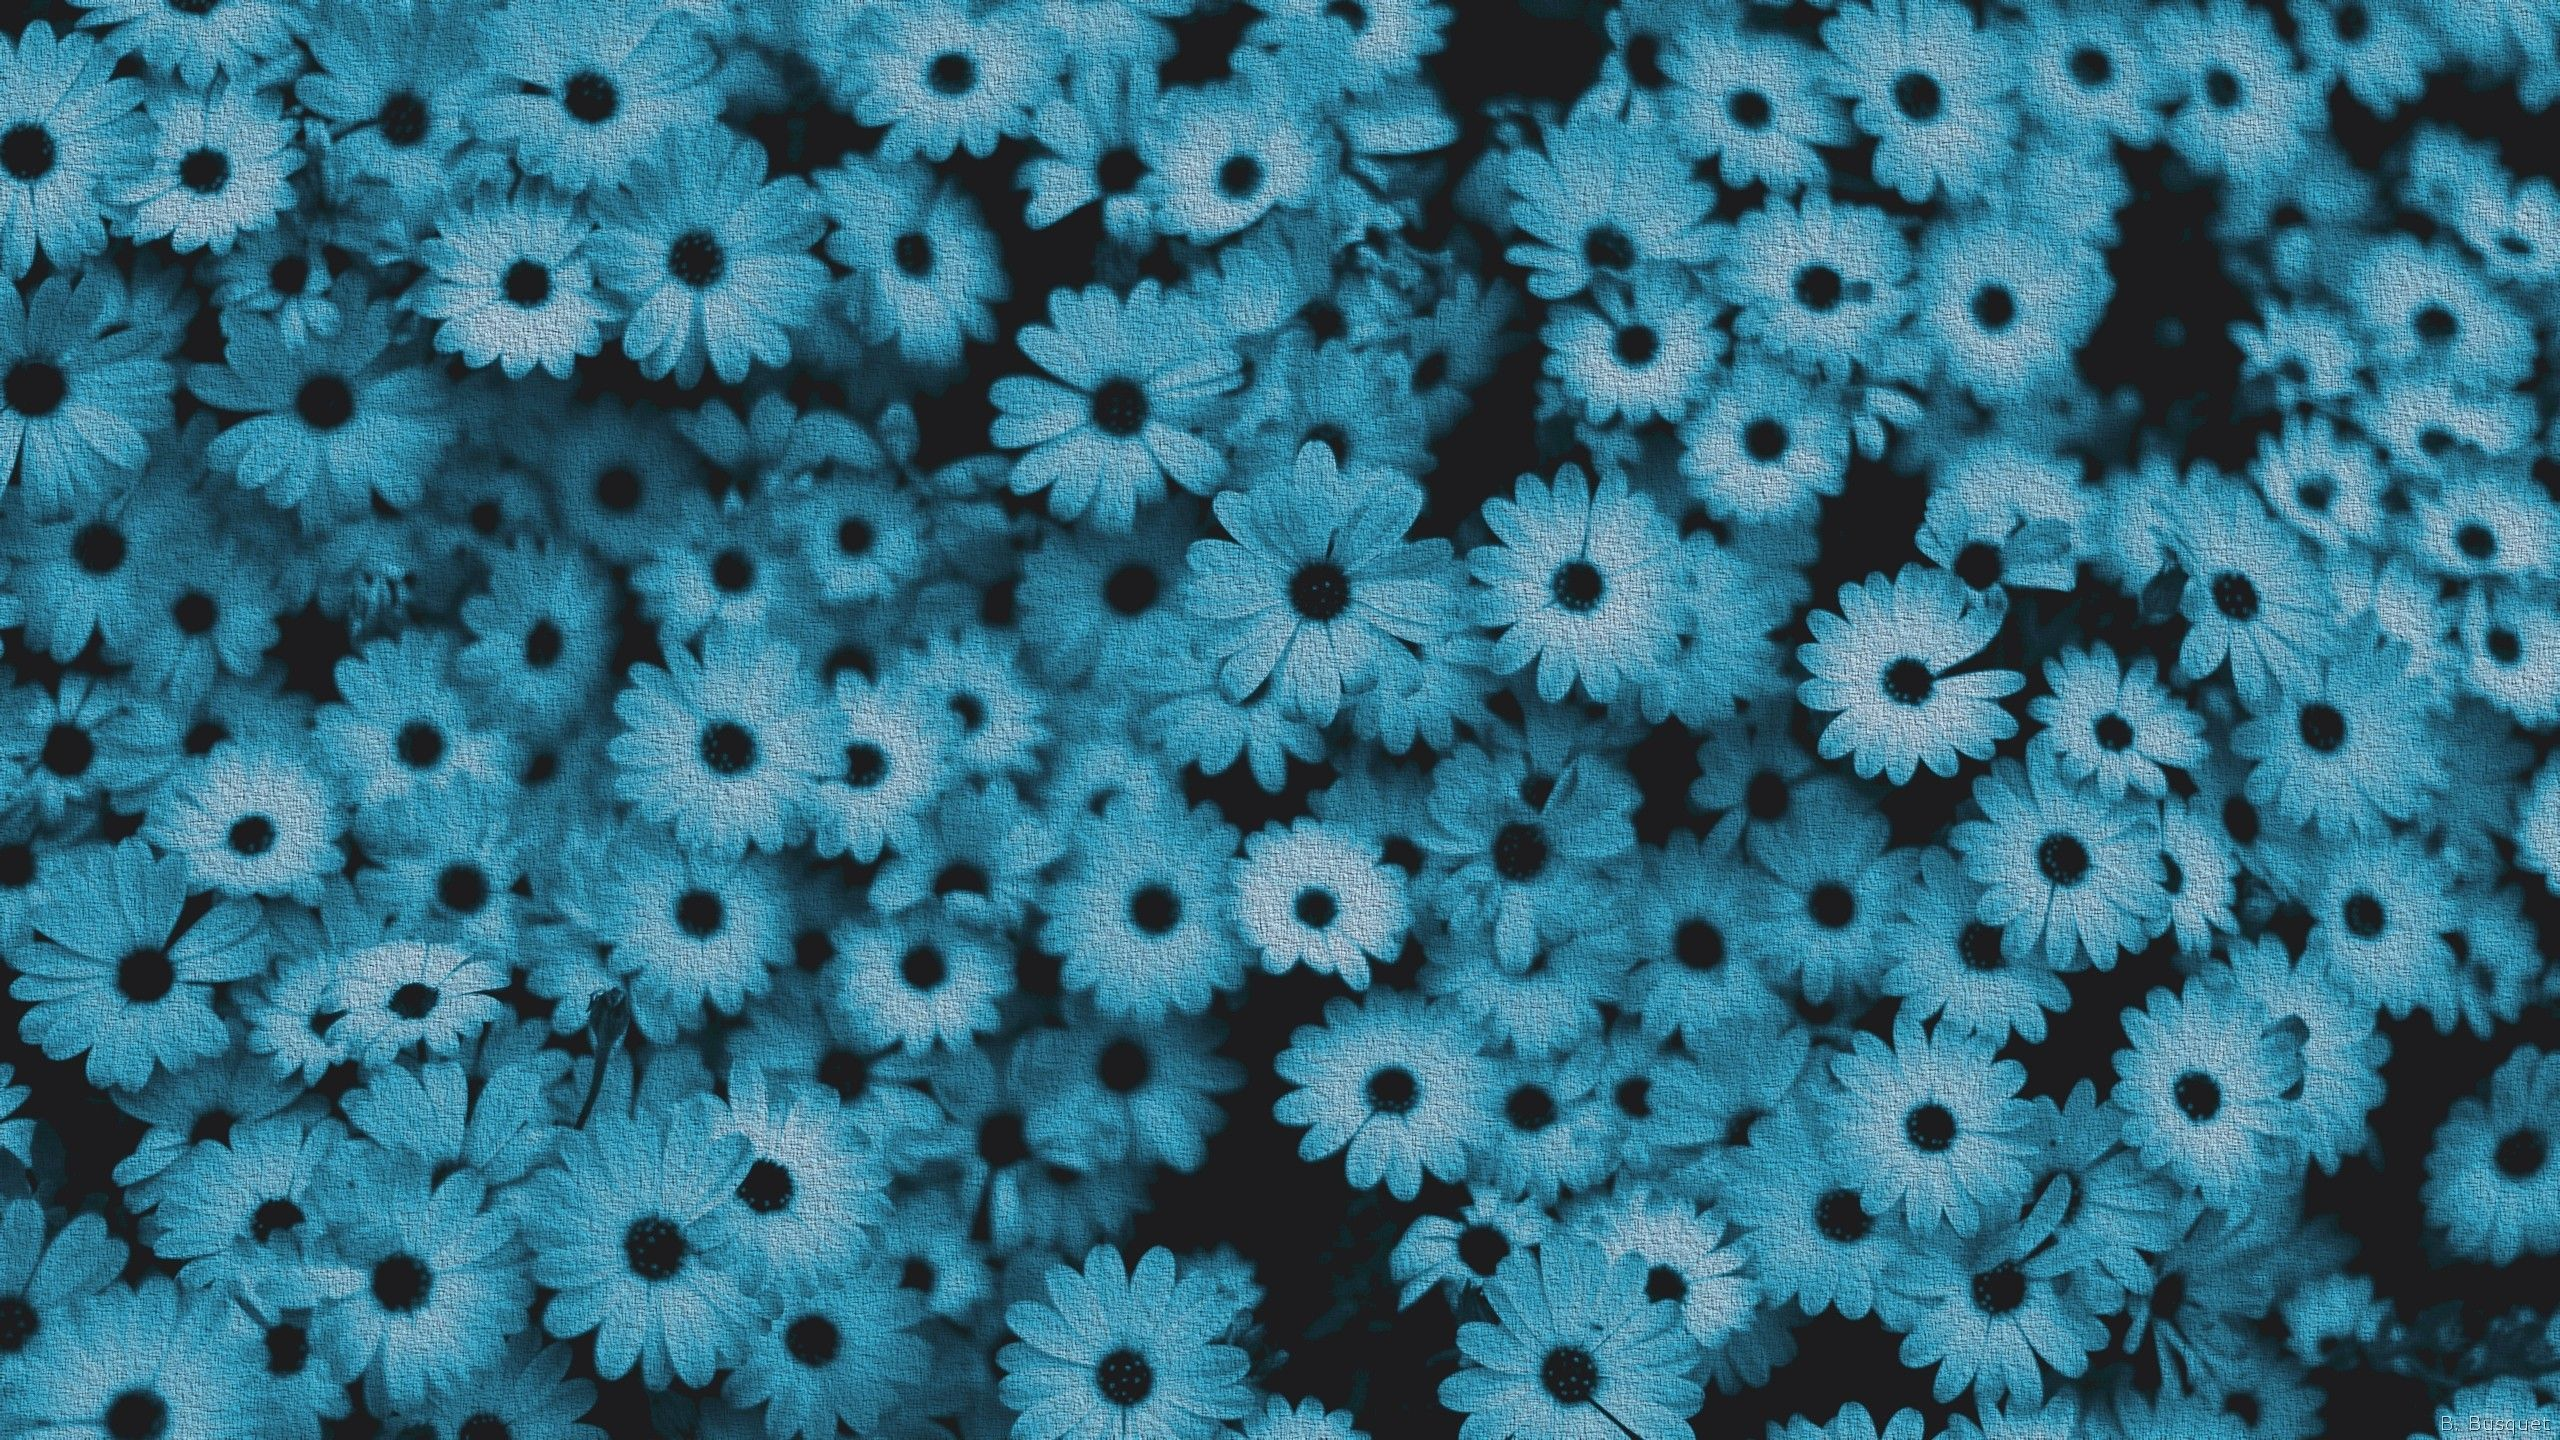 Blue Flower Aesthetic Desktop Wallpapers On Wallpaperdog